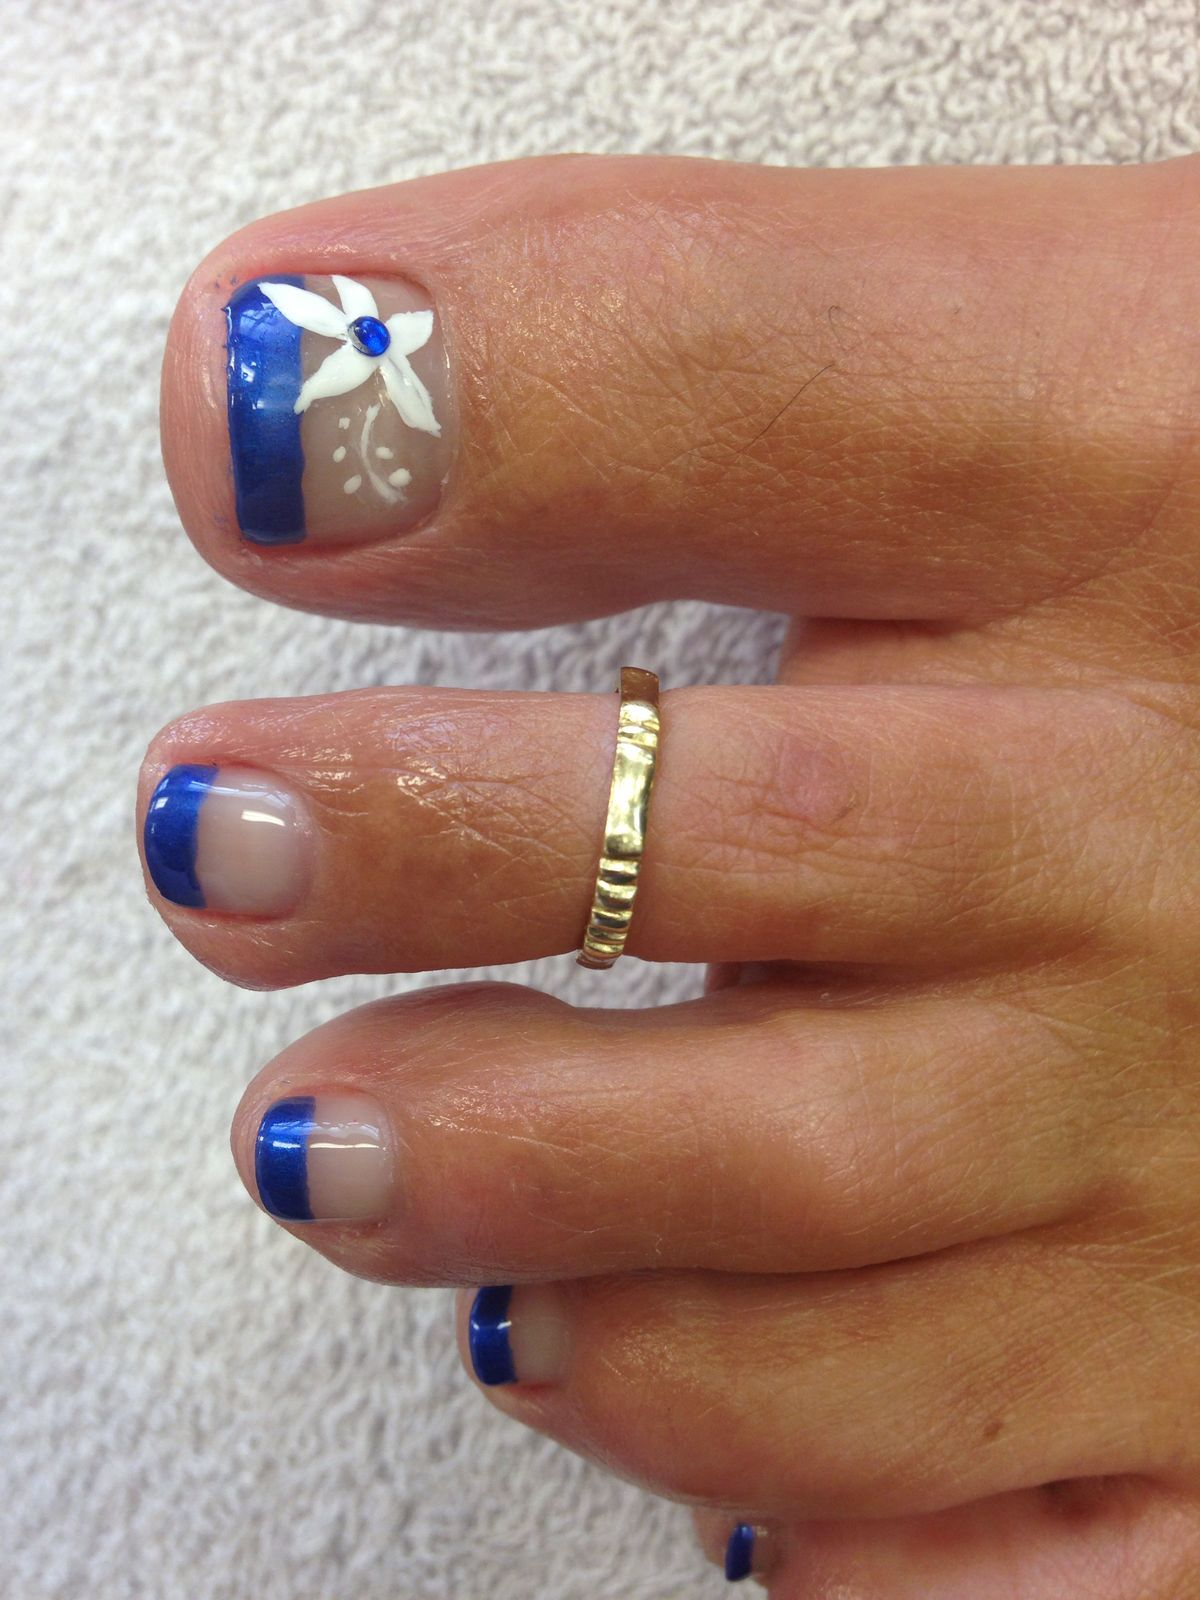 Pin by Kathy Bergman on Nails | Pinterest | Pedicures, Pedi and Toe ...